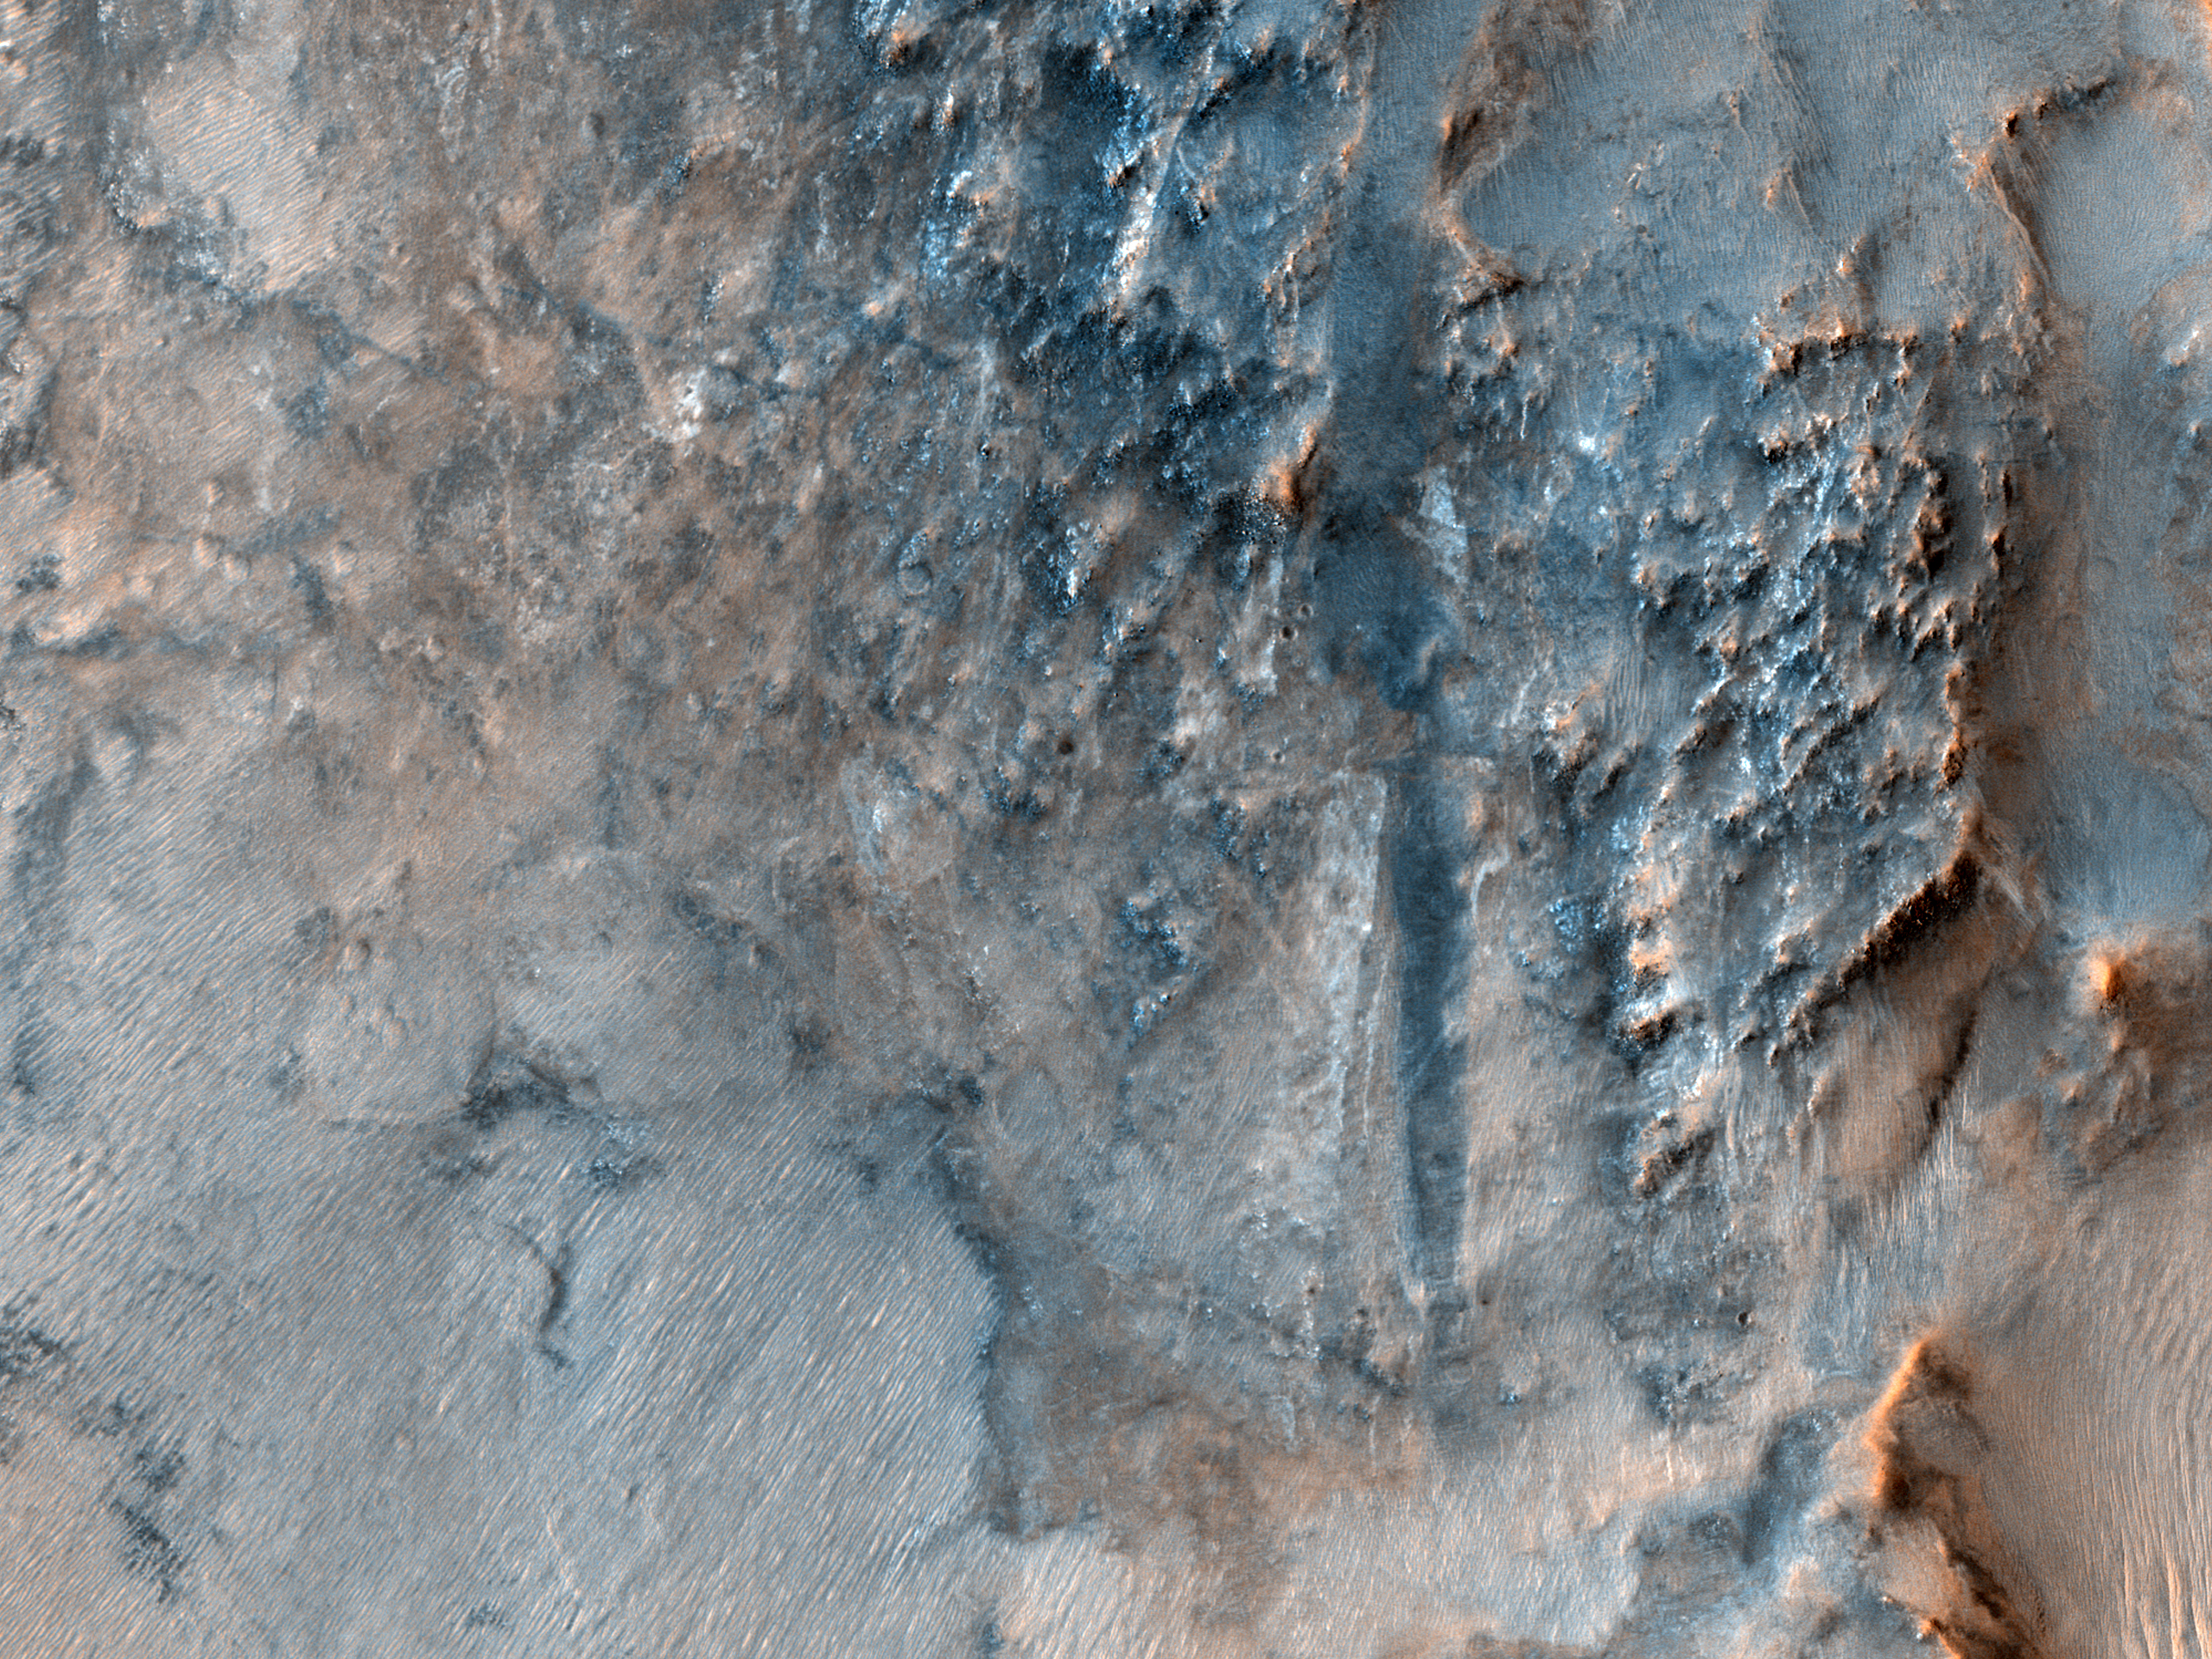 The Bedrock Riddles of Nili Fossae